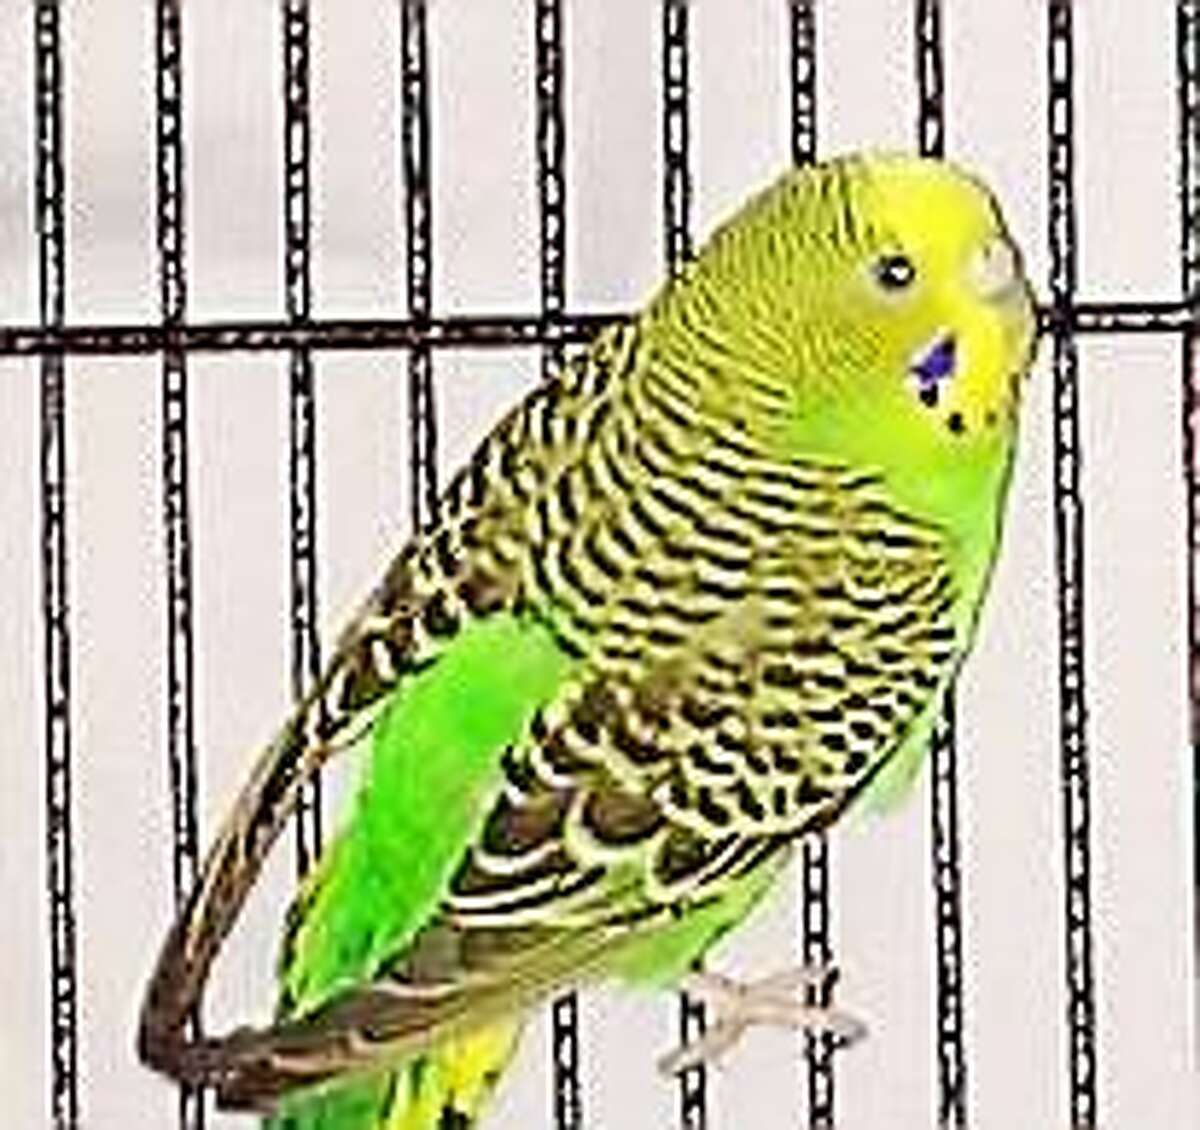 A little greenie There are six parakeets available in our bird booth at the Newington shelter ranging in age from 3 months to 2 years. They are a beautiful array of light green, yellow and aqua bringing tropical lushness right to your fingertips. Get to know our little warm-footed friends and bring a little sunshine and song into your home today. Inquiries for adoption should be made at the Connecticut Humane Society located at 701 Russell Road in Newington or by calling (860) 594-4500 or toll free at 1-800-452-0114.